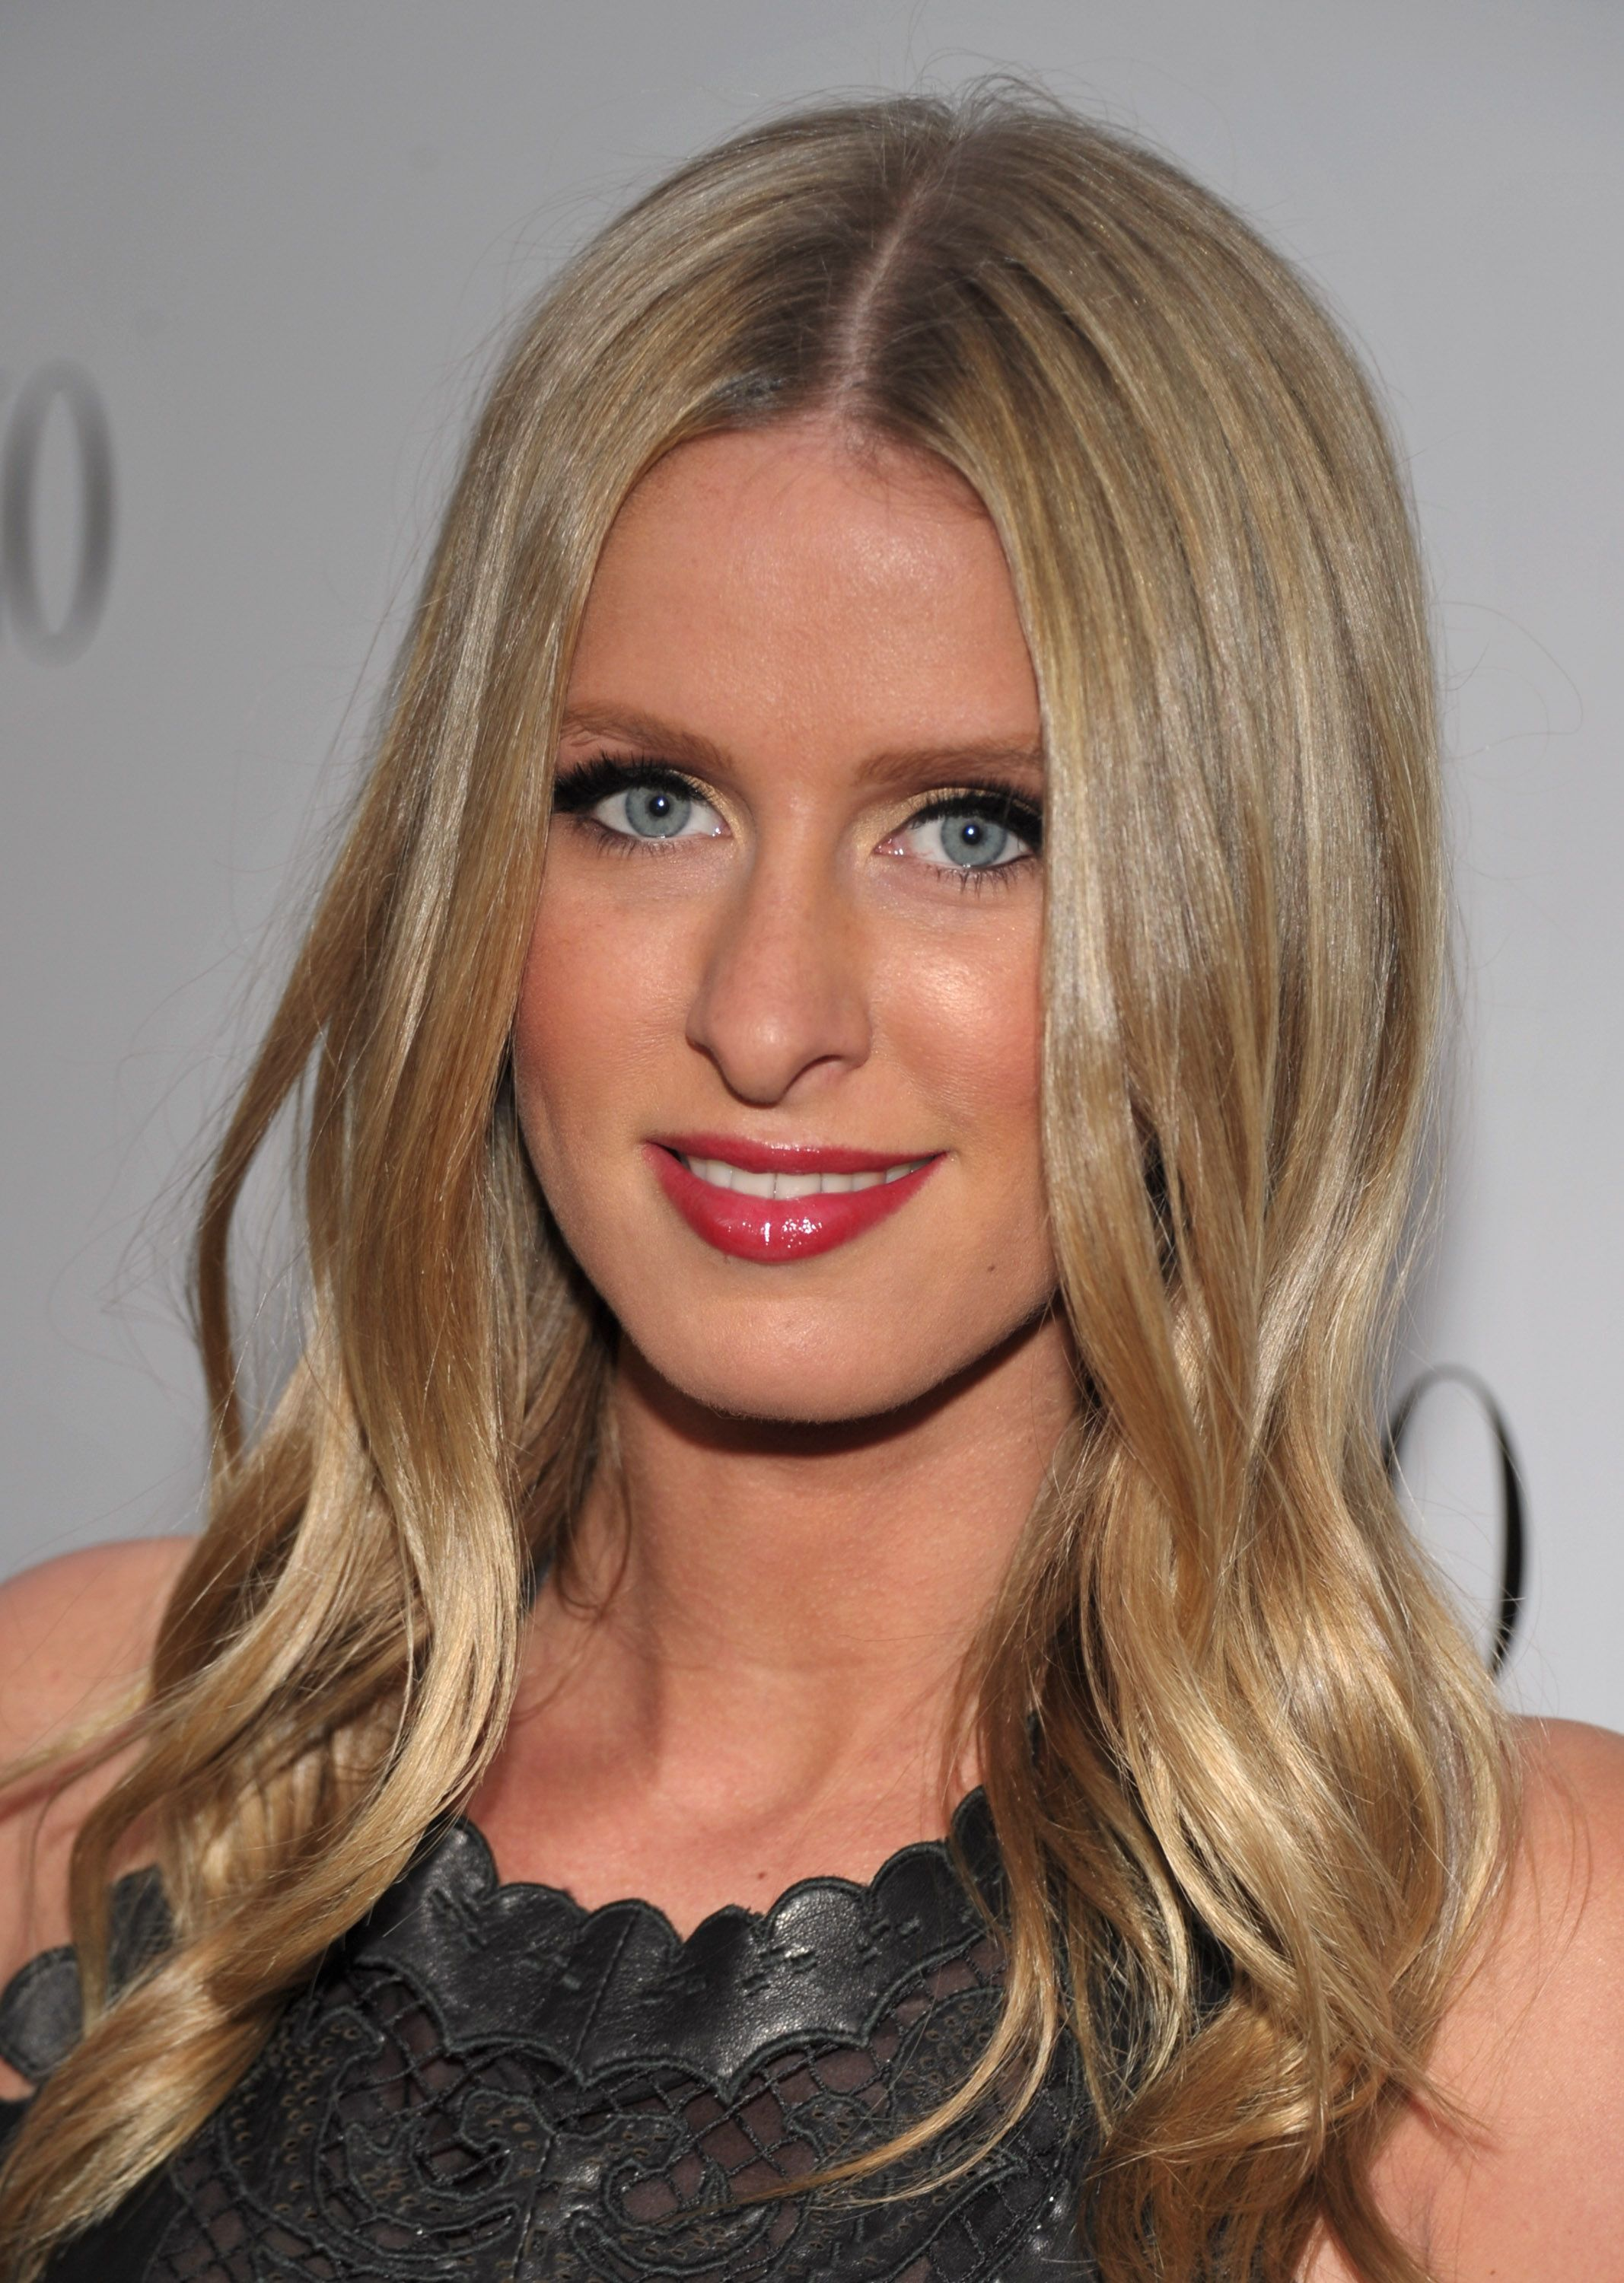 Nicky Hilton nudes (97 photos) Topless, Twitter, butt